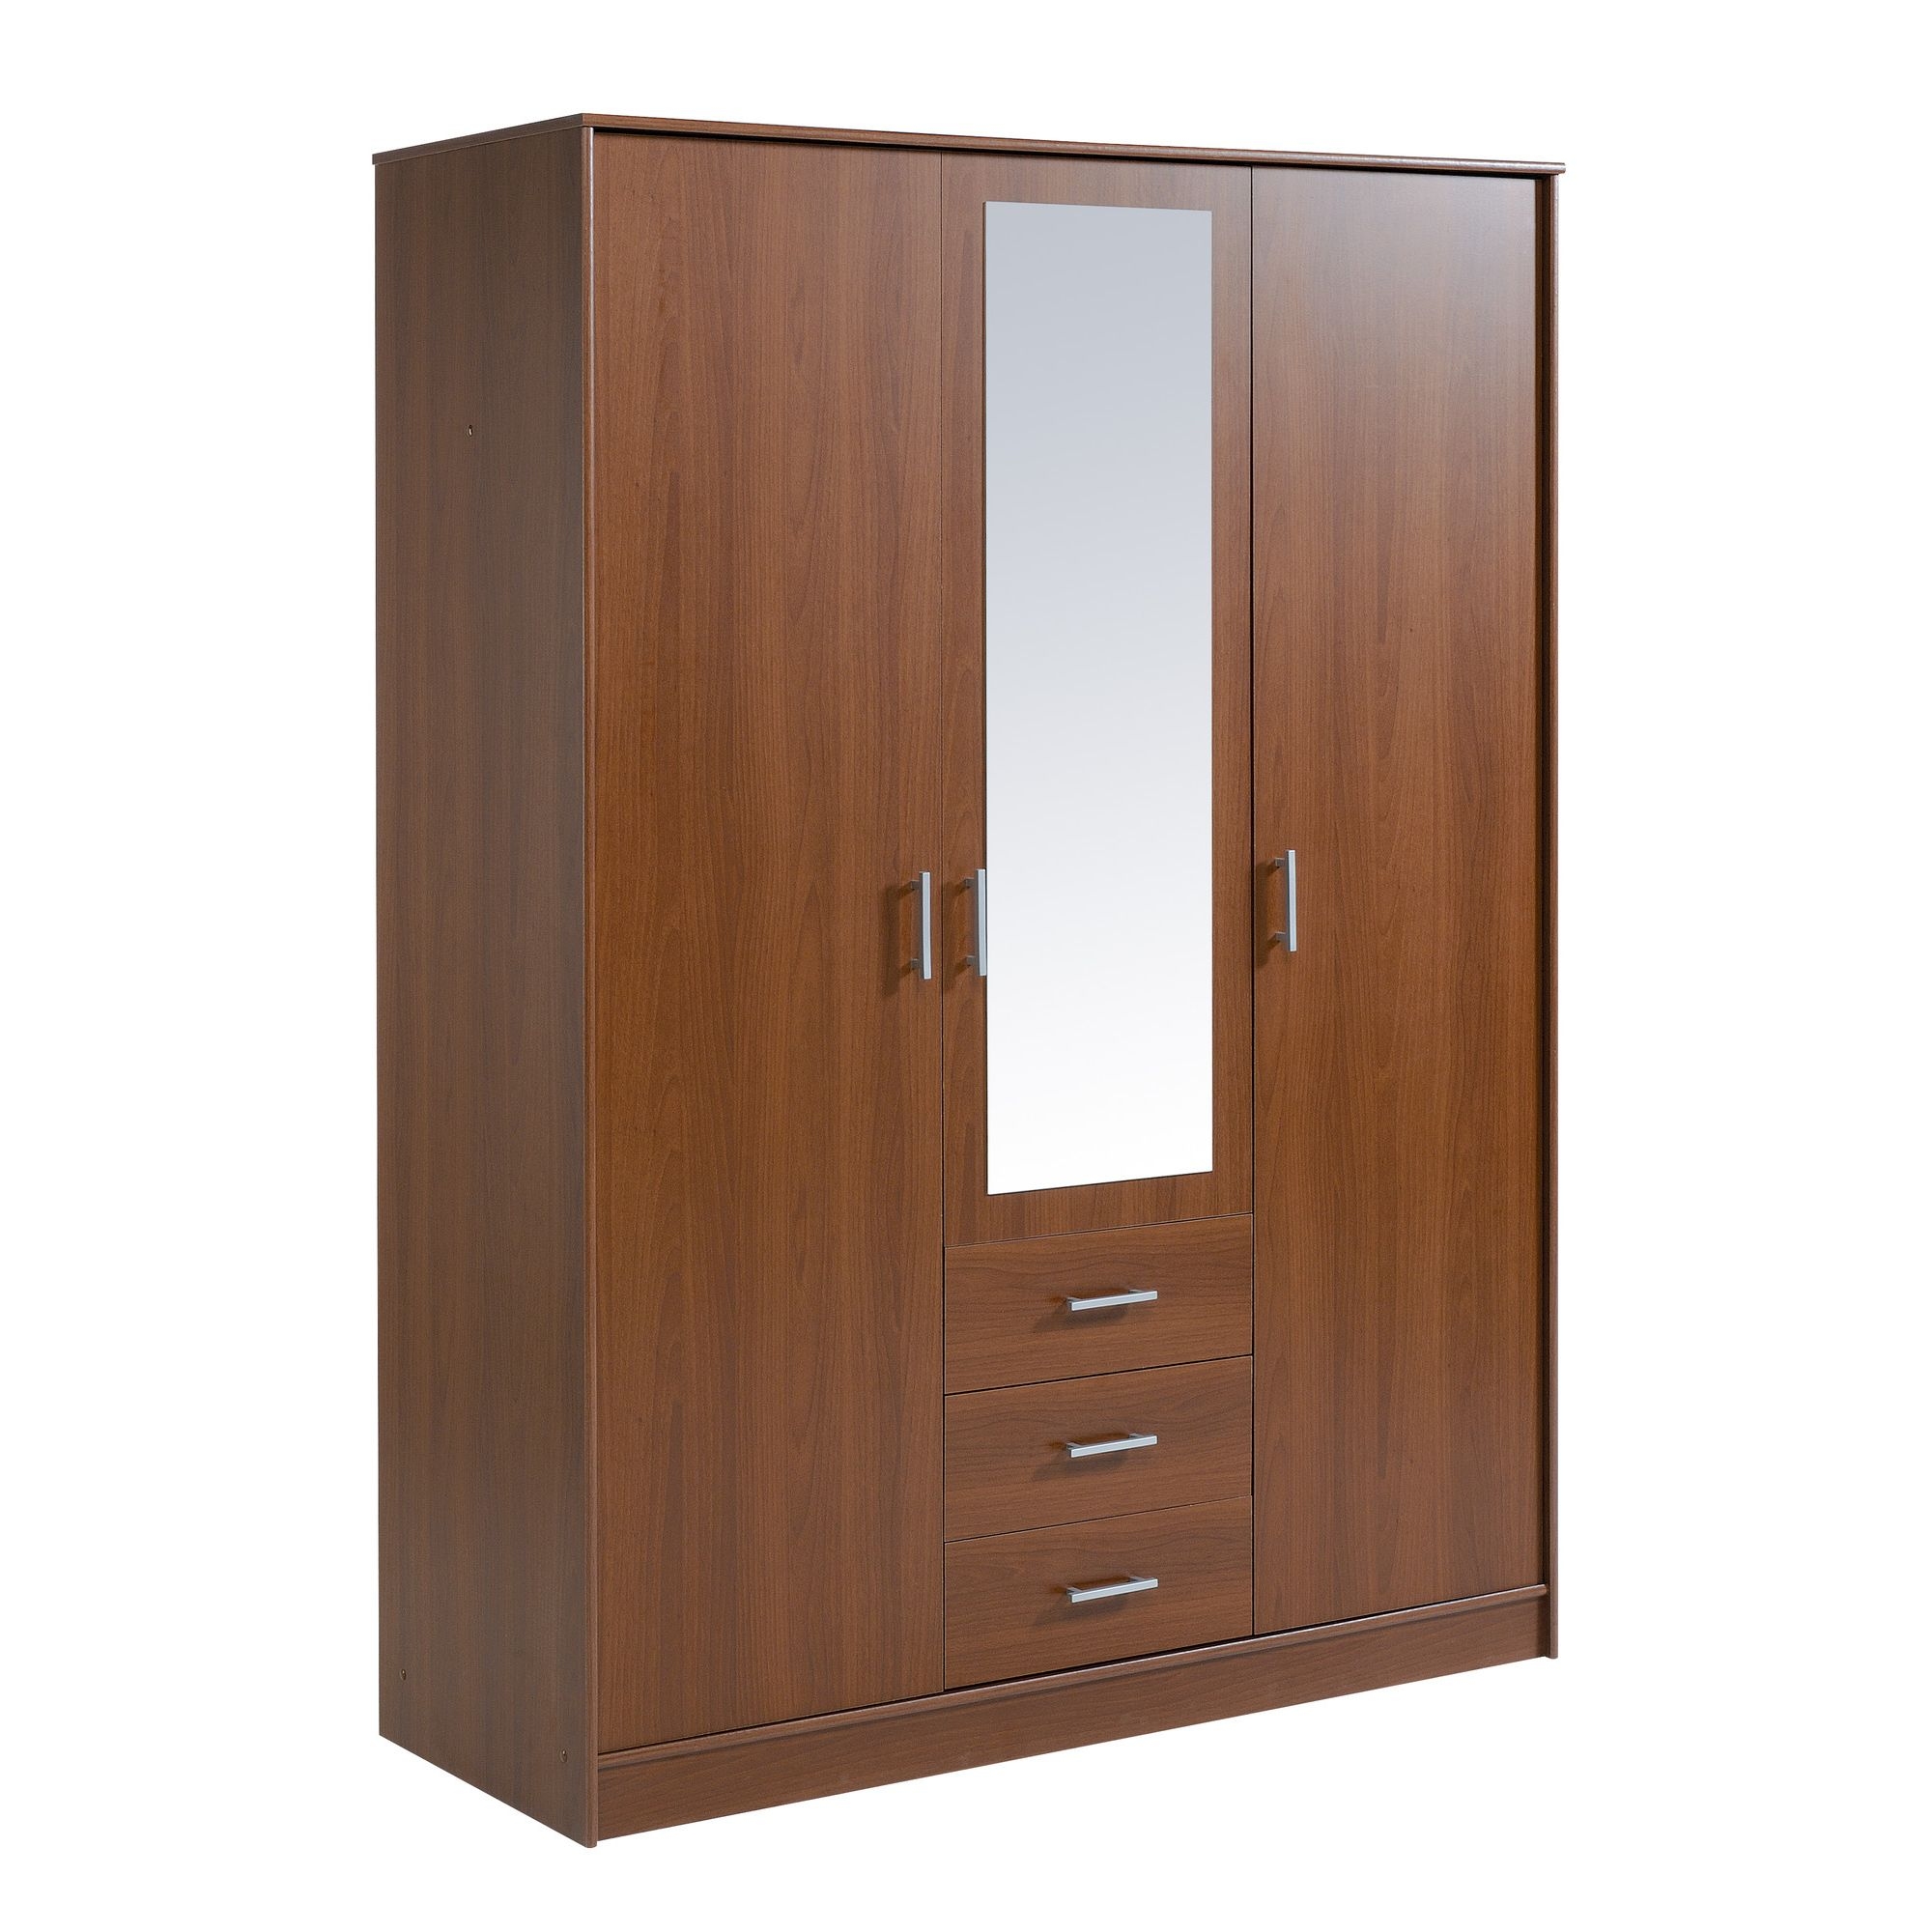 Parisot Essential Wardrobe with 3 Doors and 3 Drawers - Cherry at Tesco Direct